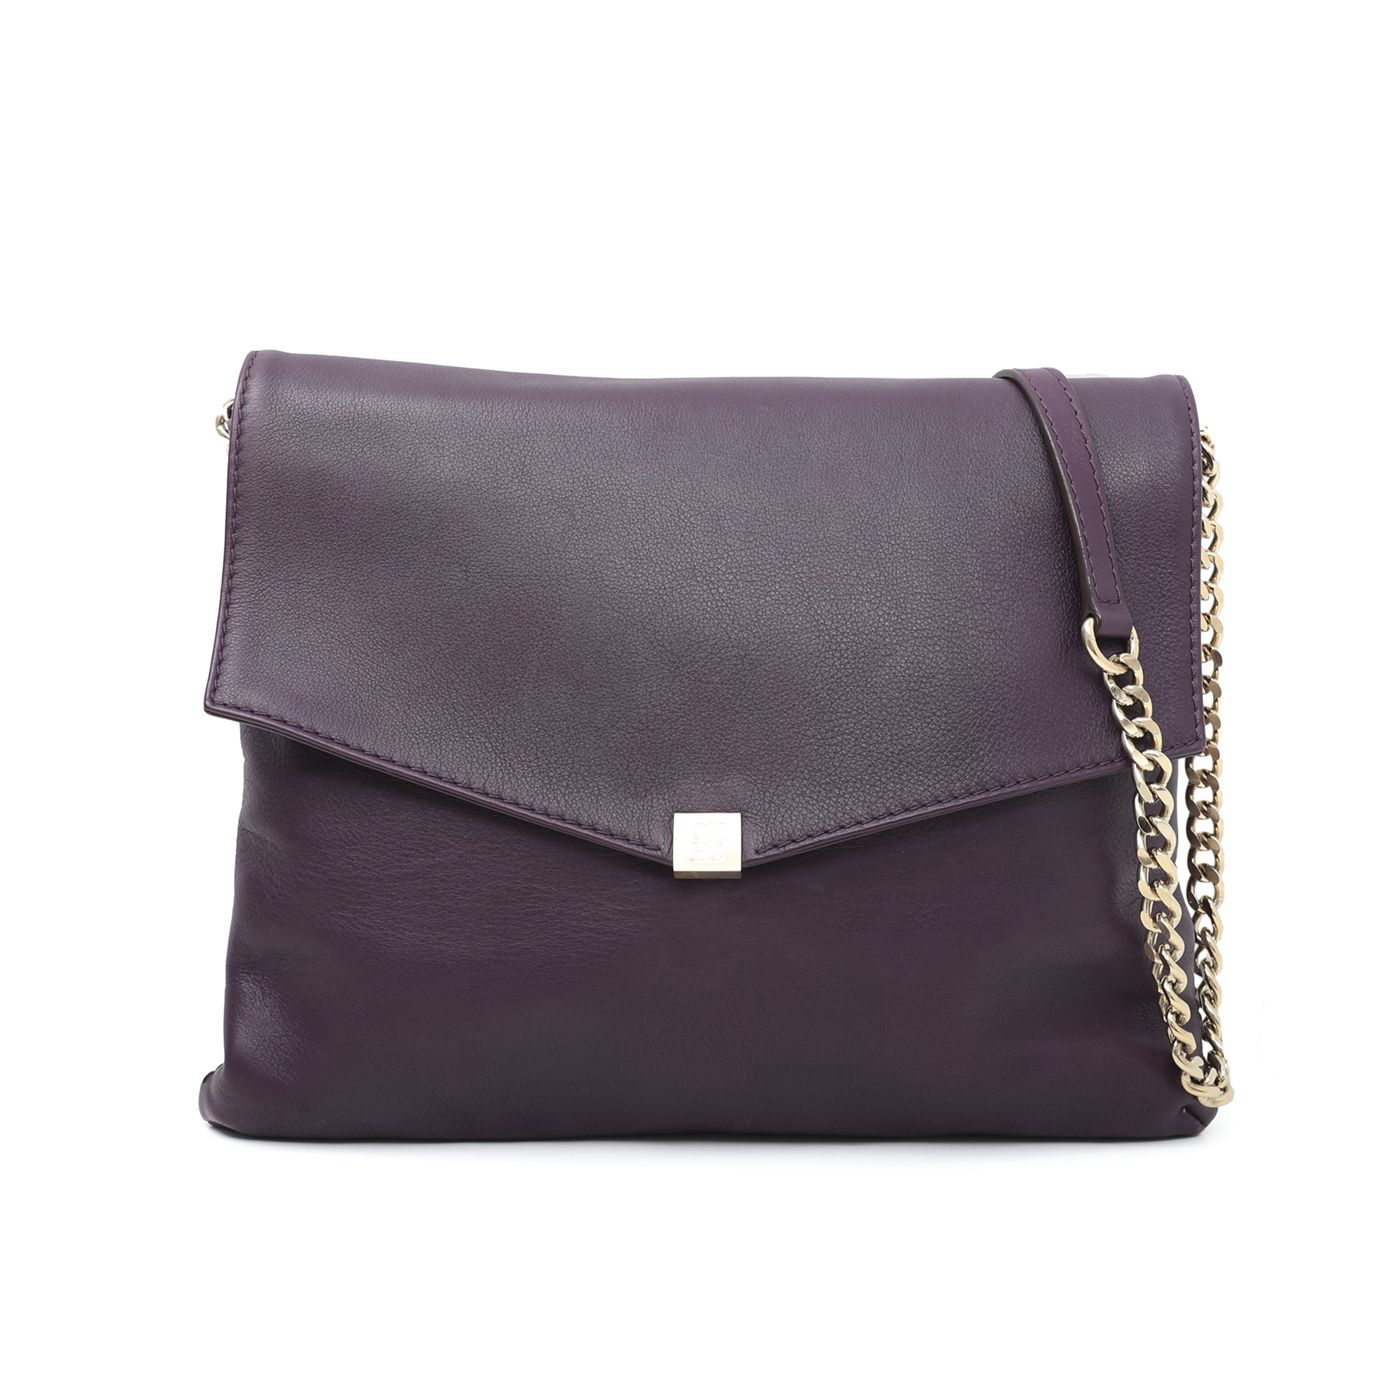 Carolina Herrera Purple Envelope Flap Flat Shoulder Bag